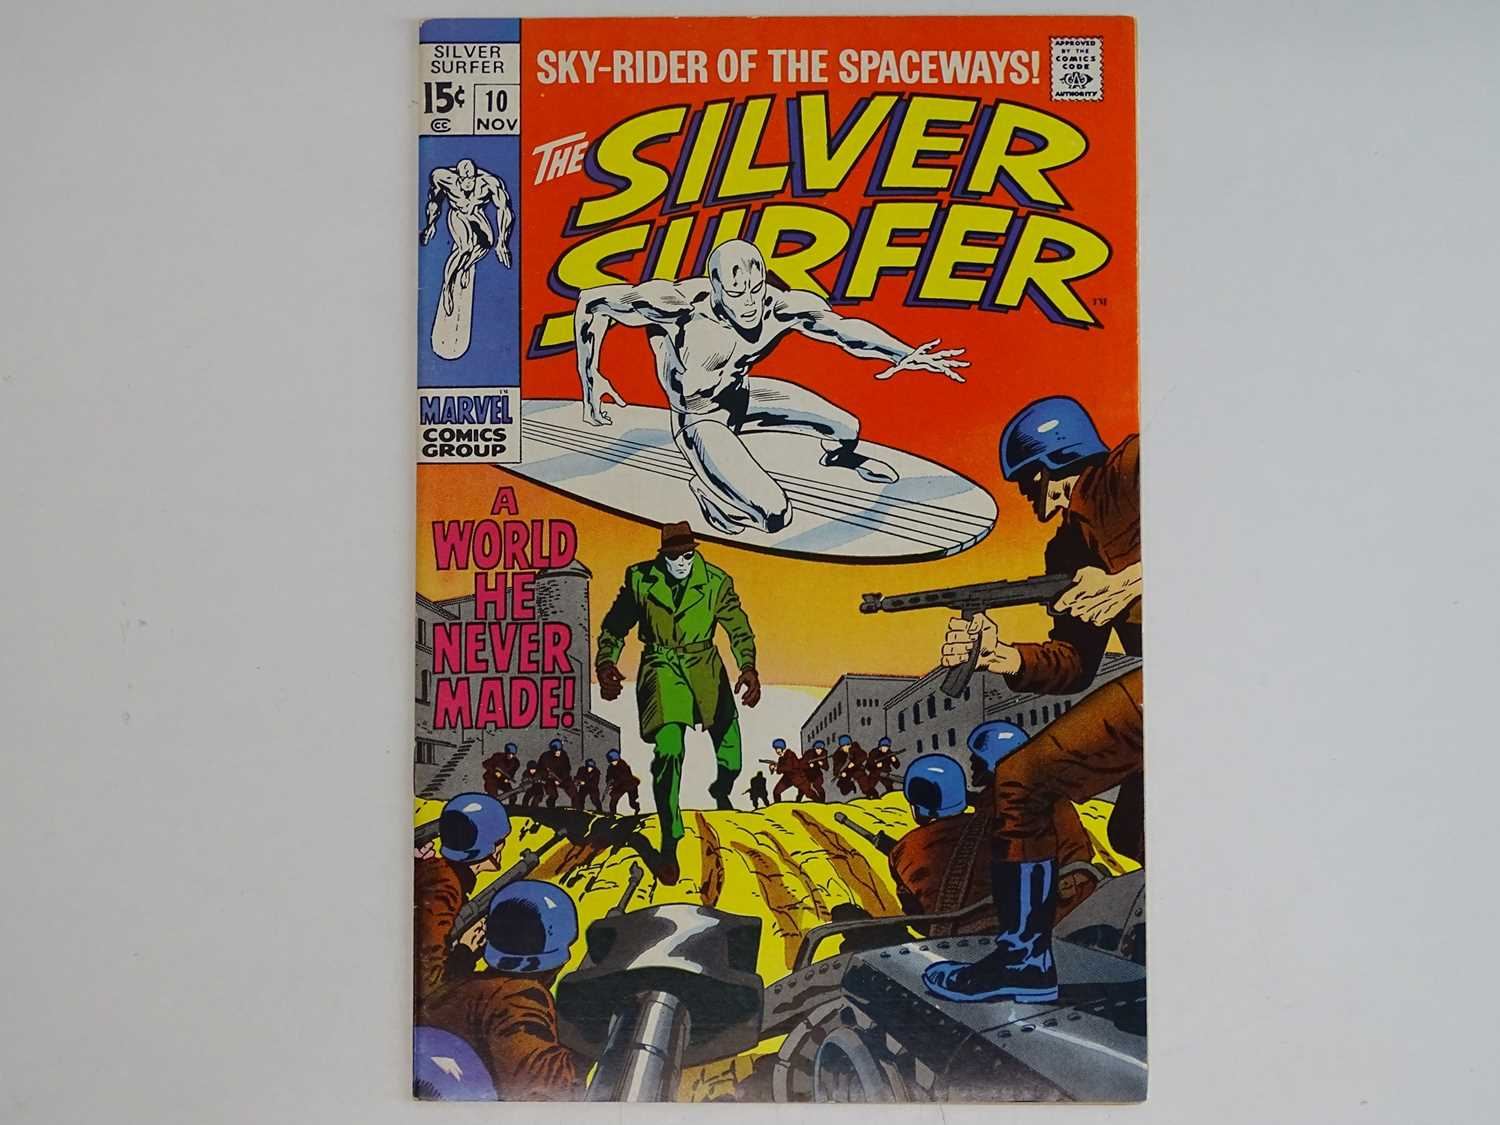 SILVER SURFER #10 - (1970 - MARVEL) - John Buscema cover and interior art - Flat/Unfolded - a